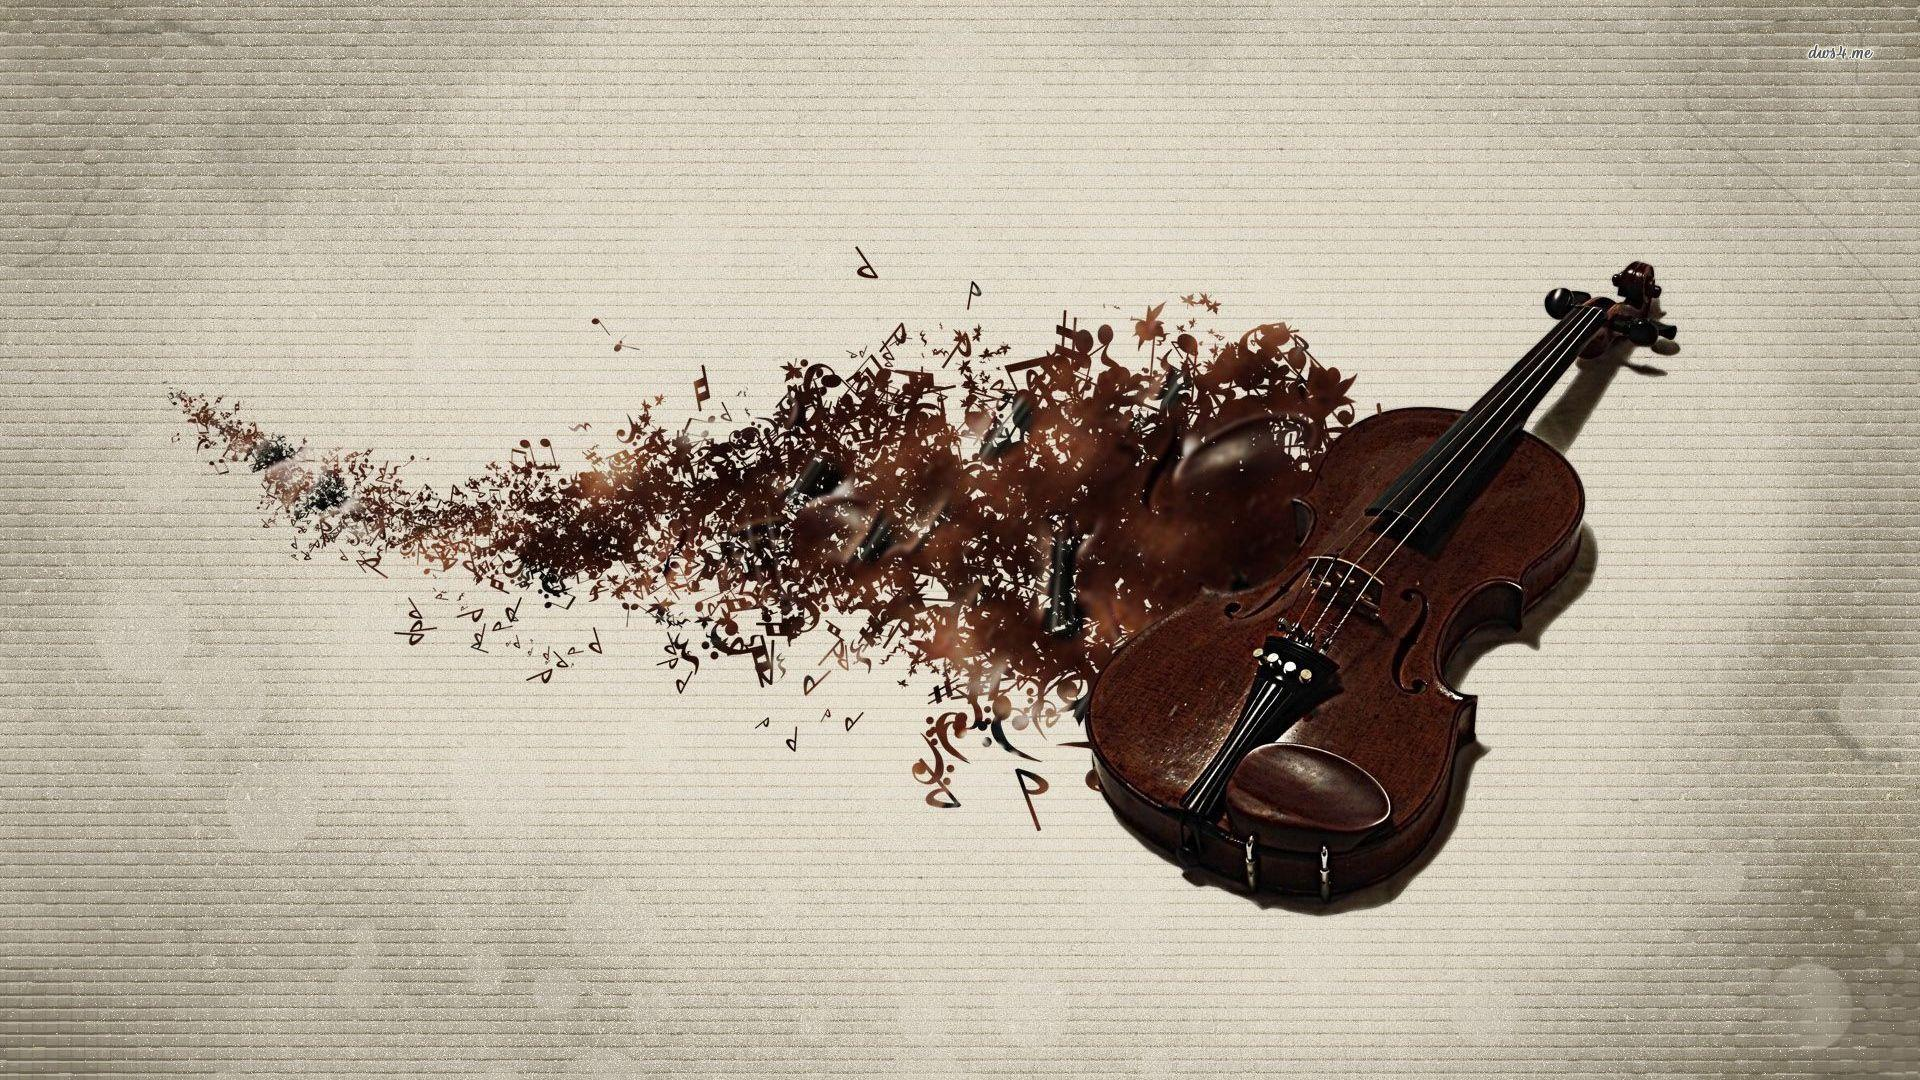 Violin Wallpapers - Wallpaper Cave